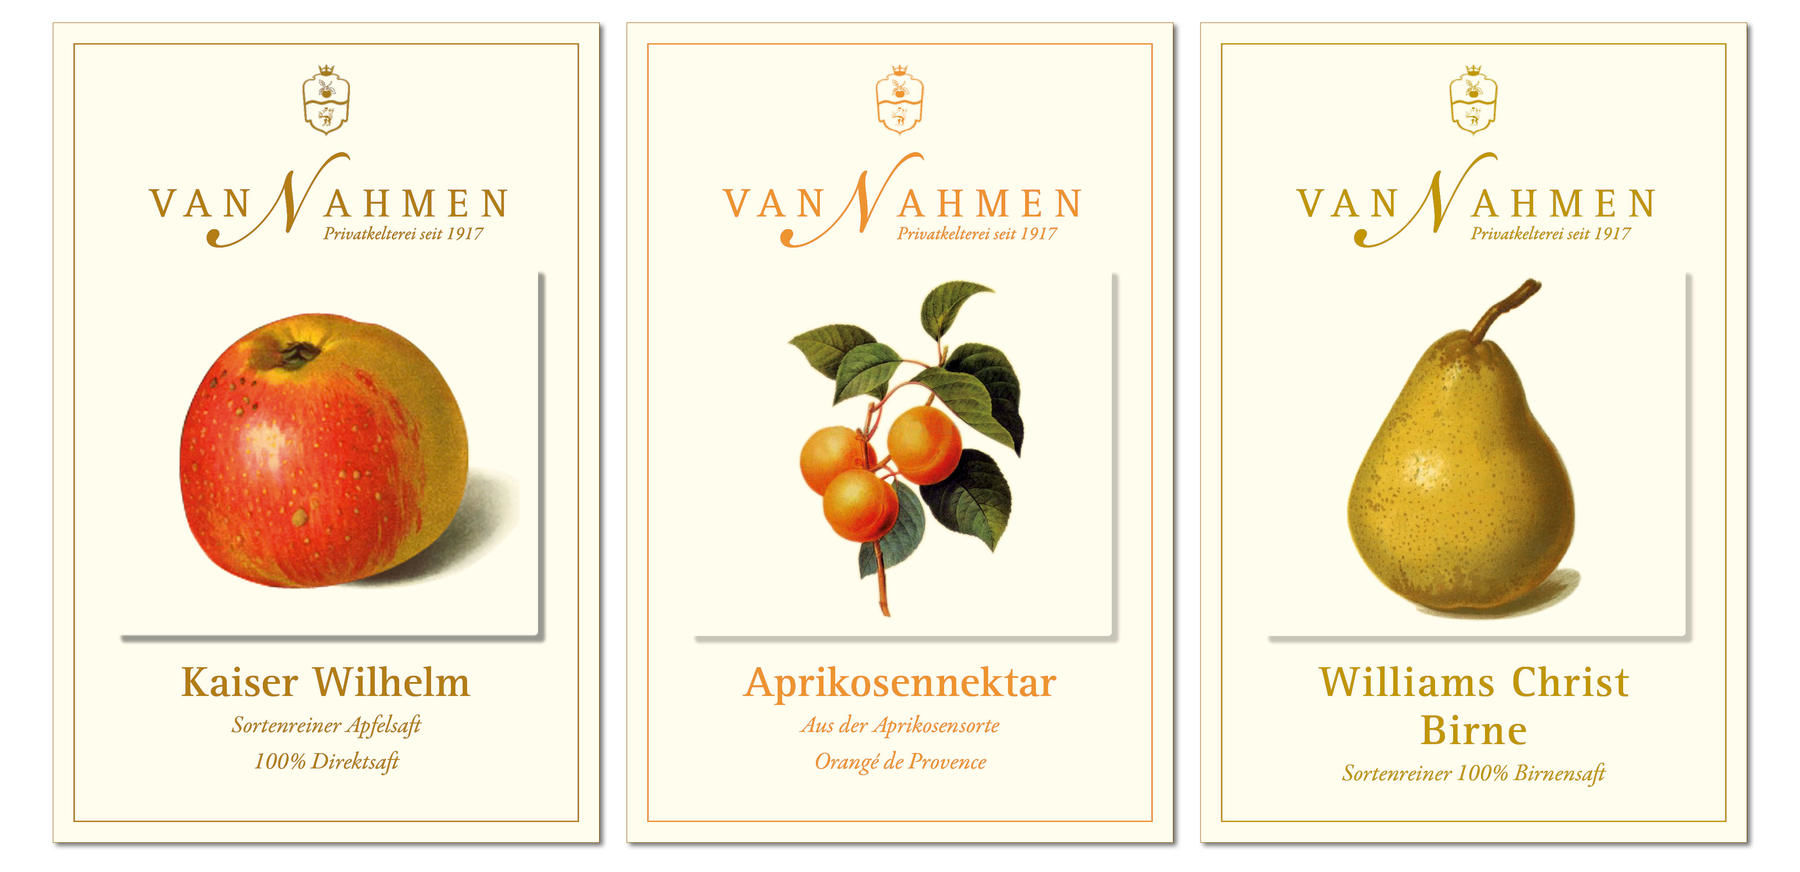 van Nahmen Obstsäfte, Sortenreine Obstsäfte, Produktgestaltung, Packaging, Corporate Design